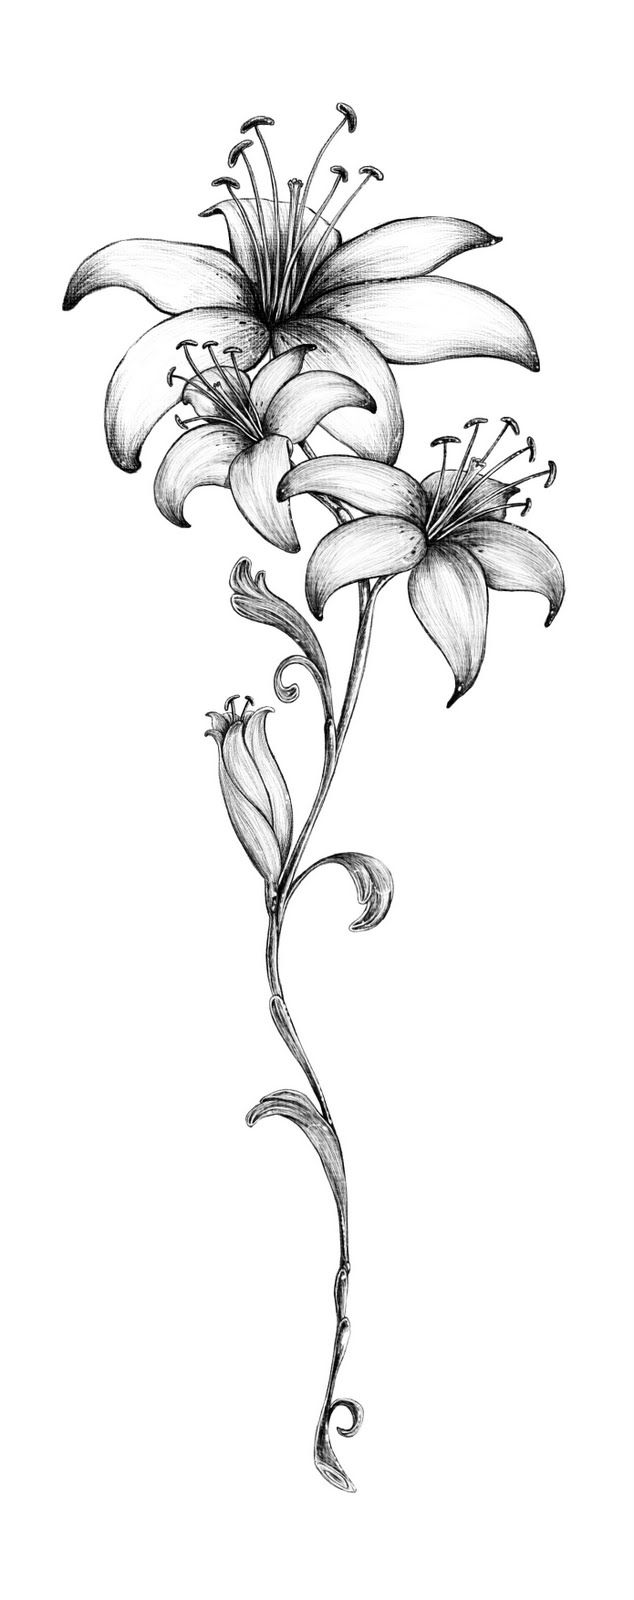 Lily tattoo im gong to get this in the center of my chest my lily tattoo im gong to get this in the center of my chest izmirmasajfo